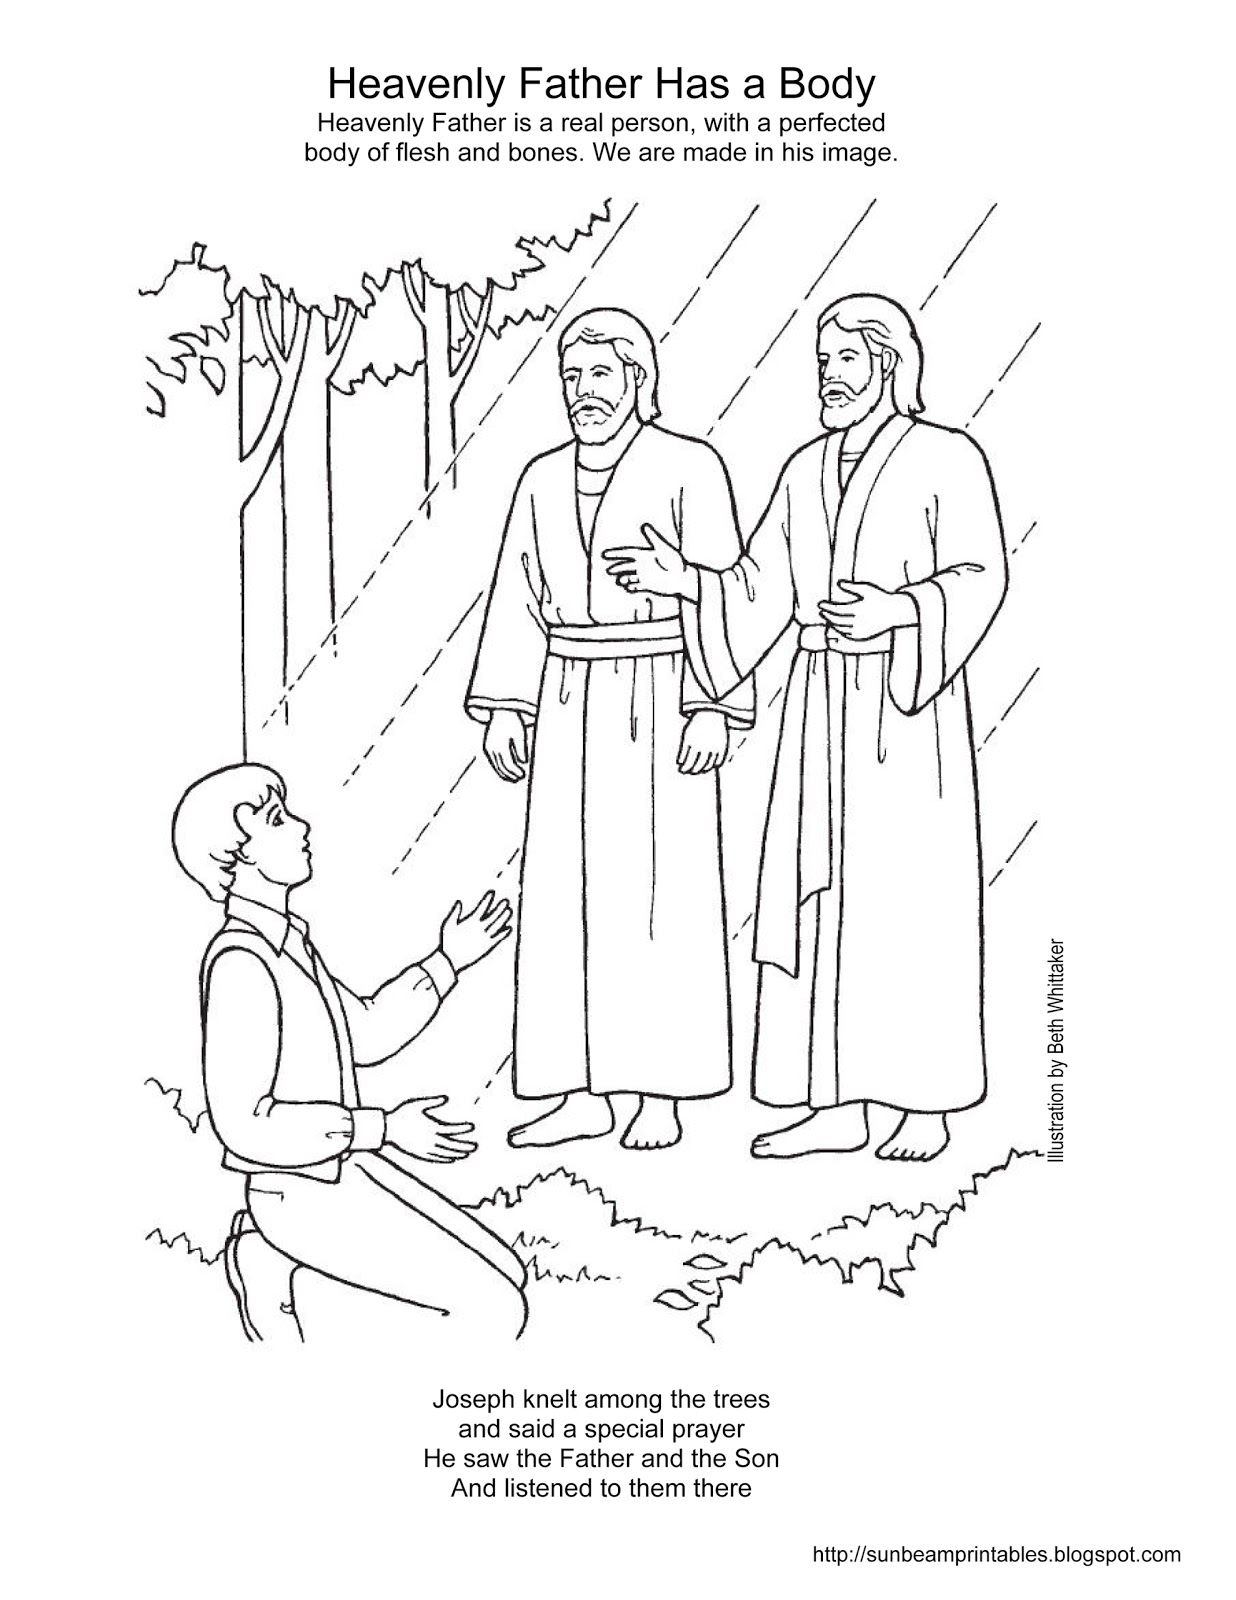 Sunbeam Printables Coloring Page For Lesson 2 Heavenly Father Has A Body